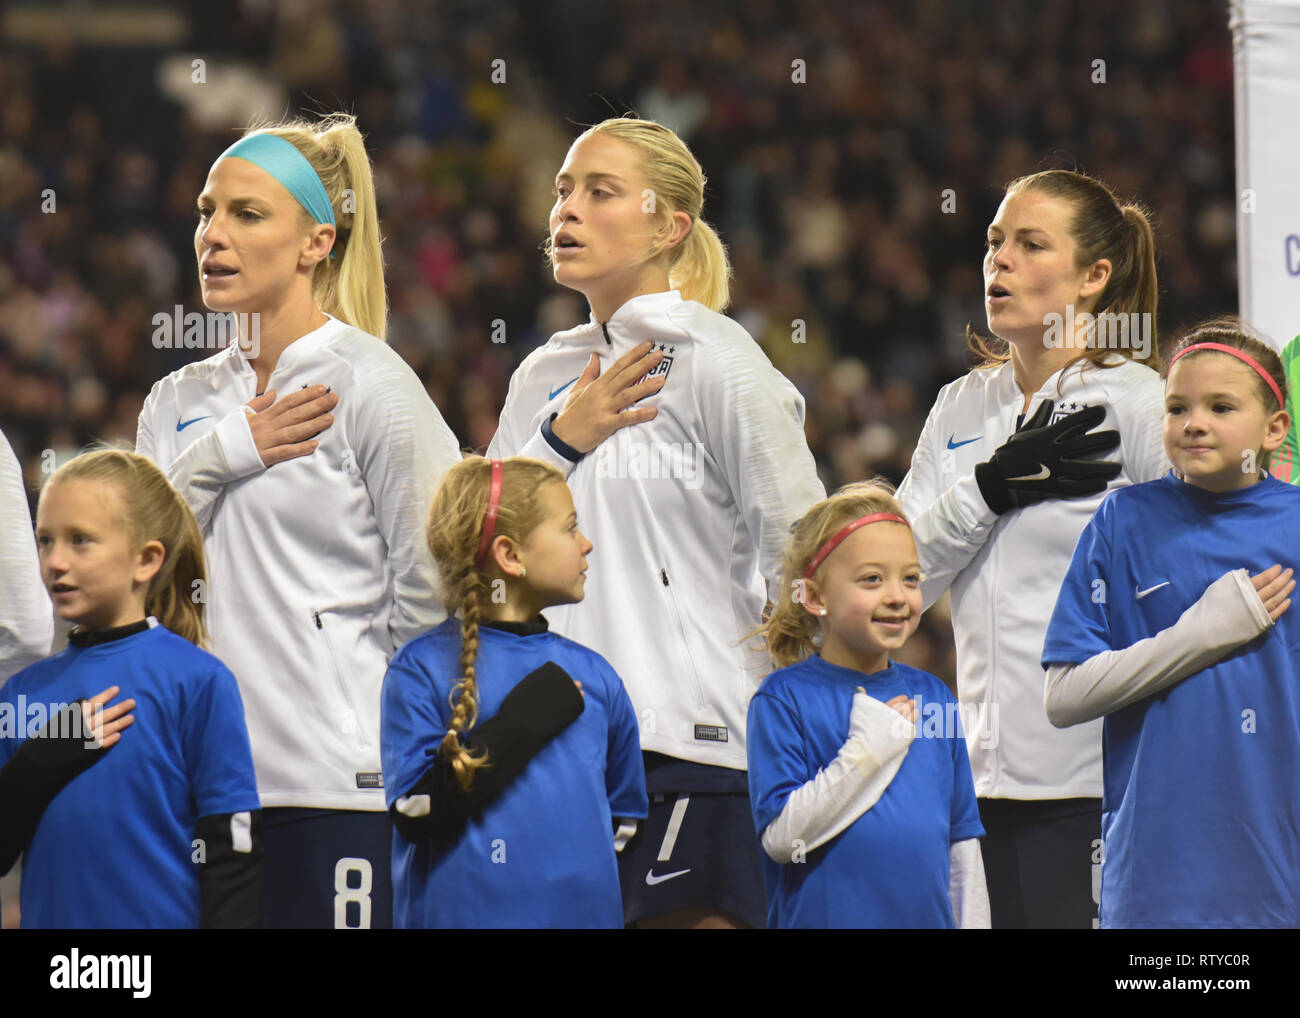 Julie Ertz / Julie Johnston sings the national anthem before a 2019 international World Cup friendly. - Stock Image